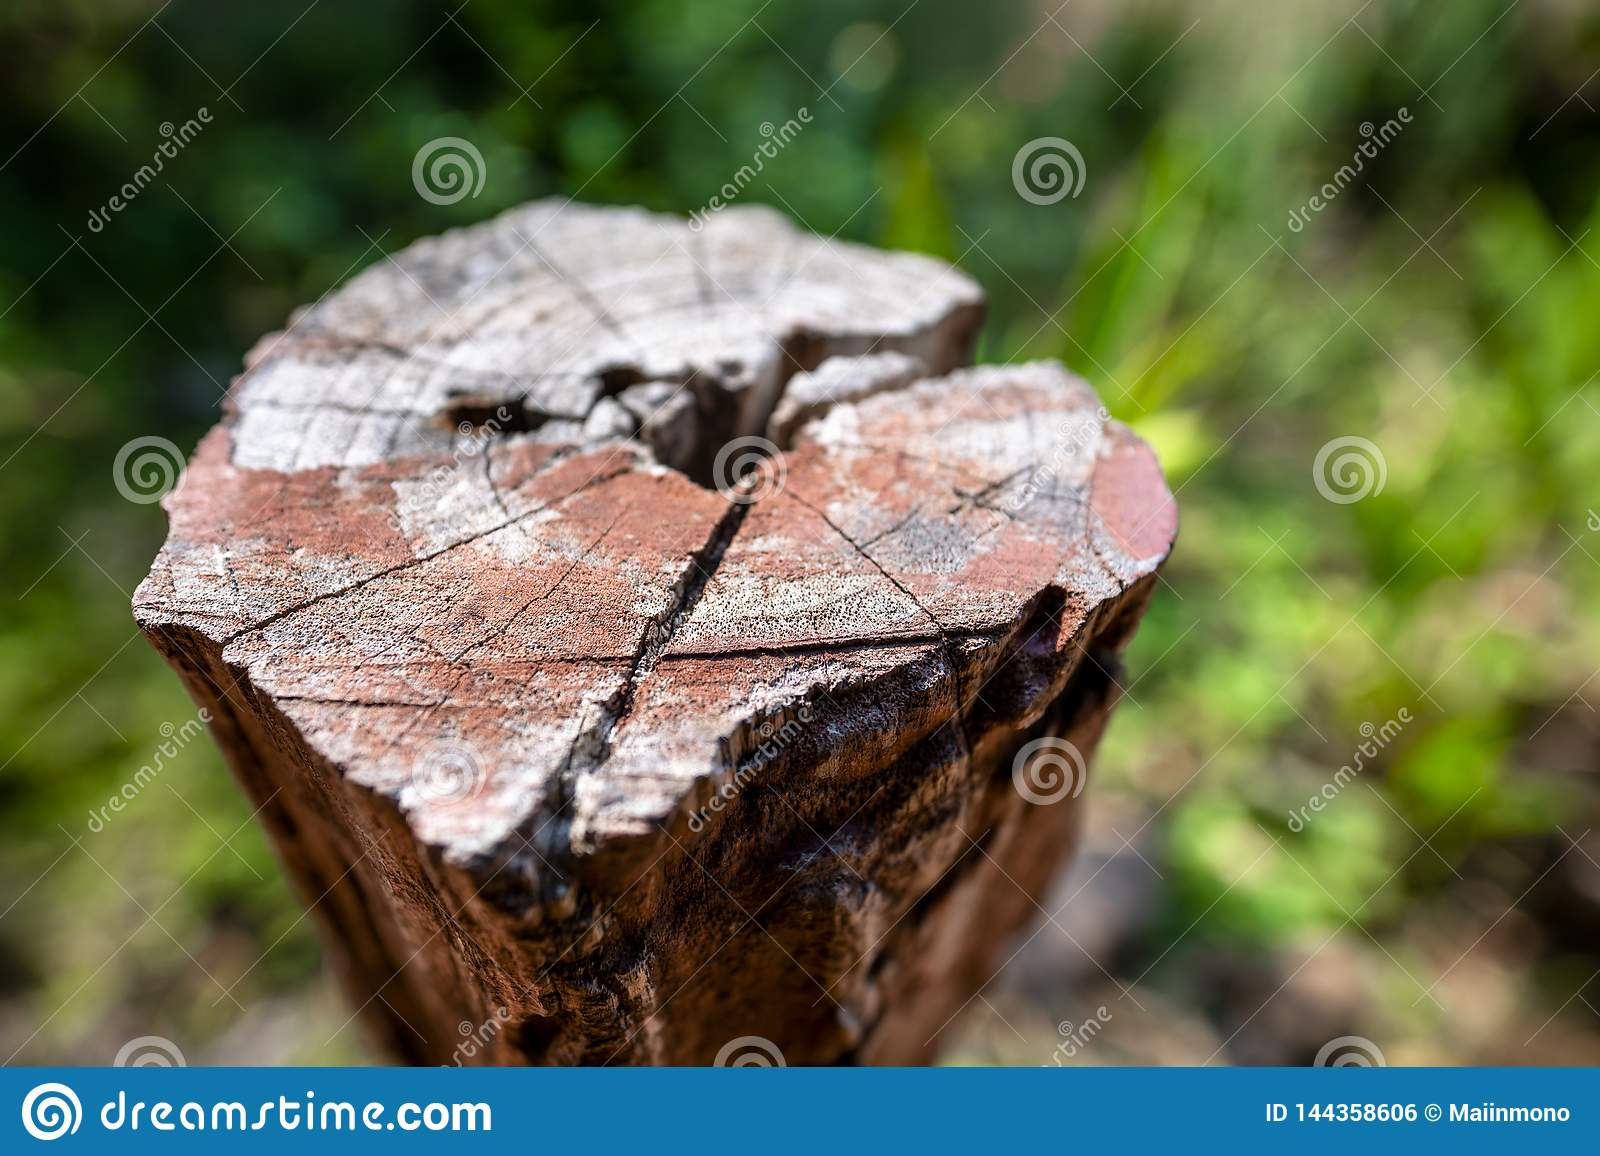 Closeup of brown tree stump with blurred green background.